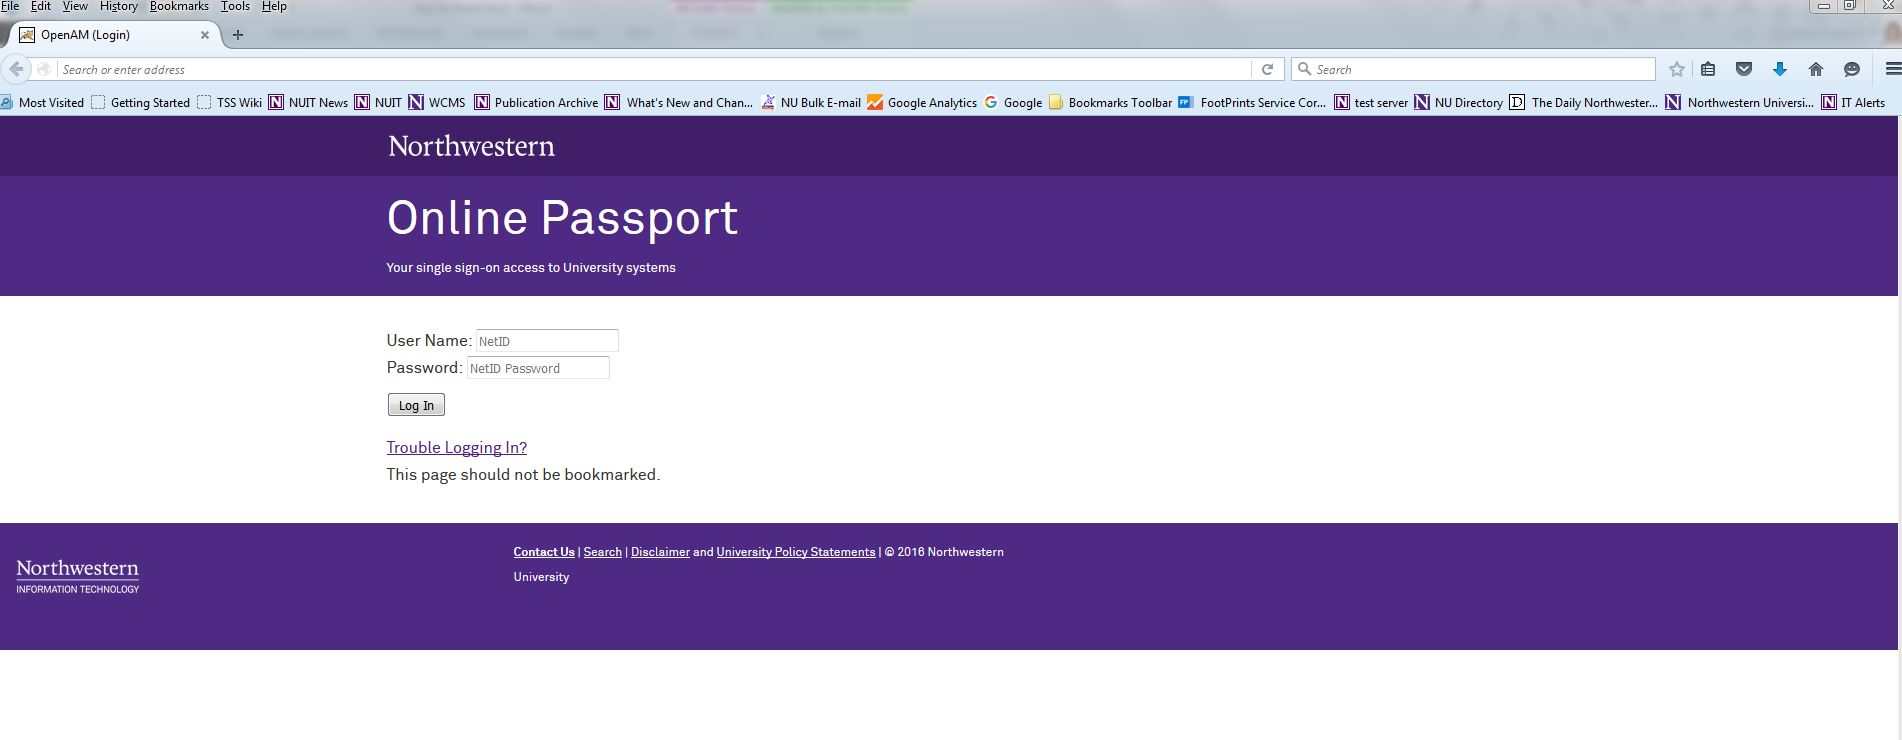 This is a screen shot of the new Online Passport log in page.